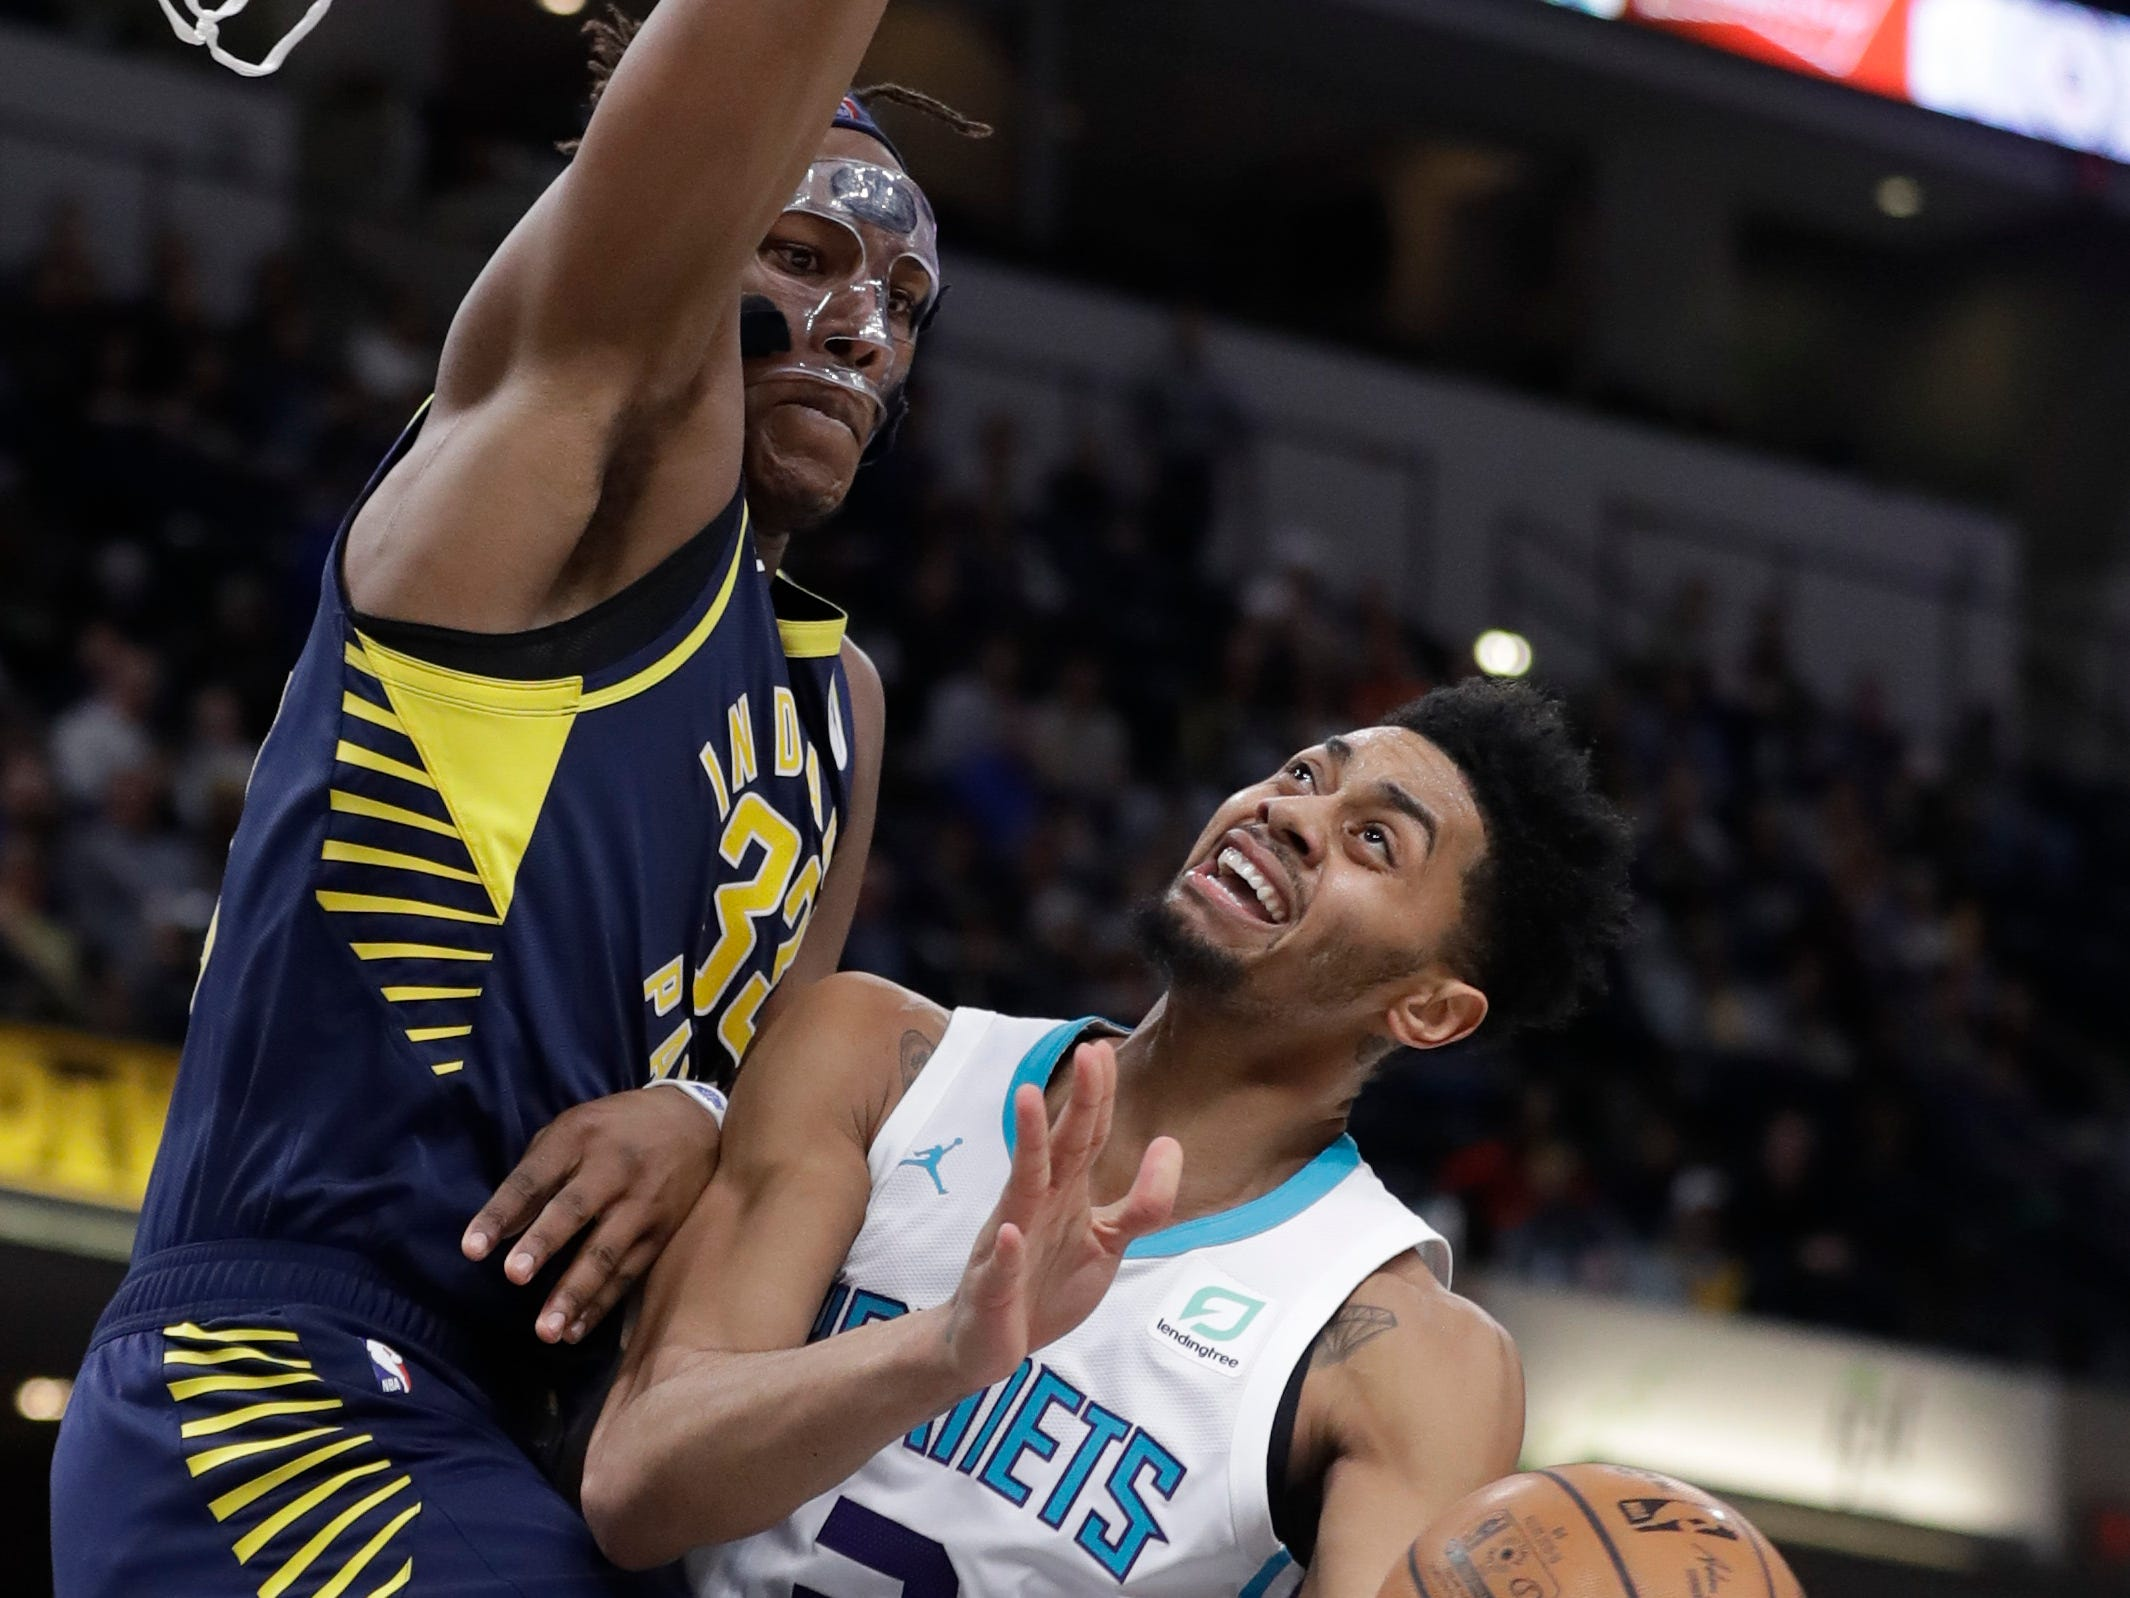 Charlotte Hornets' Jeremy Lamb (3) puts up a shot against Indiana Pacers' Myles Turner during the first half of an NBA basketball game, Monday, Feb. 11, 2019, in Indianapolis. (AP Photo/Darron Cummings)